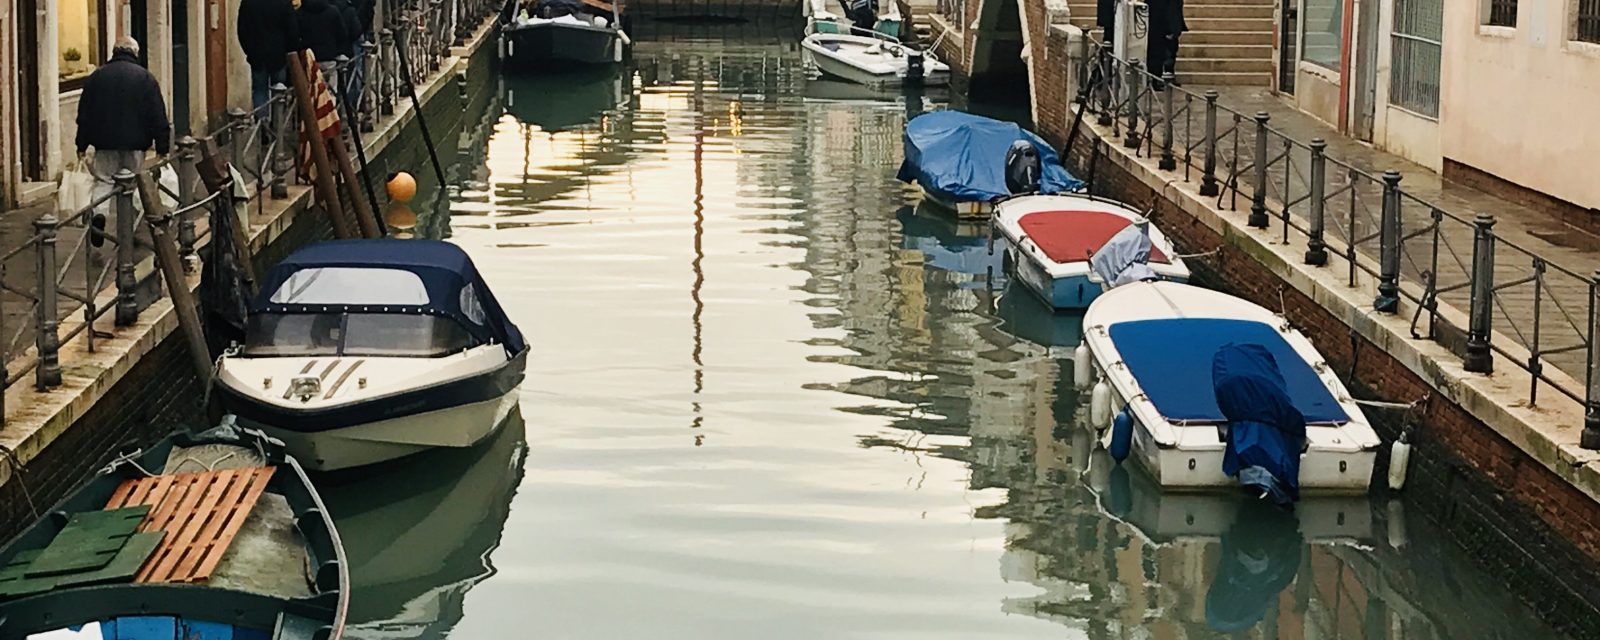 Boats moored on the canals of Venice